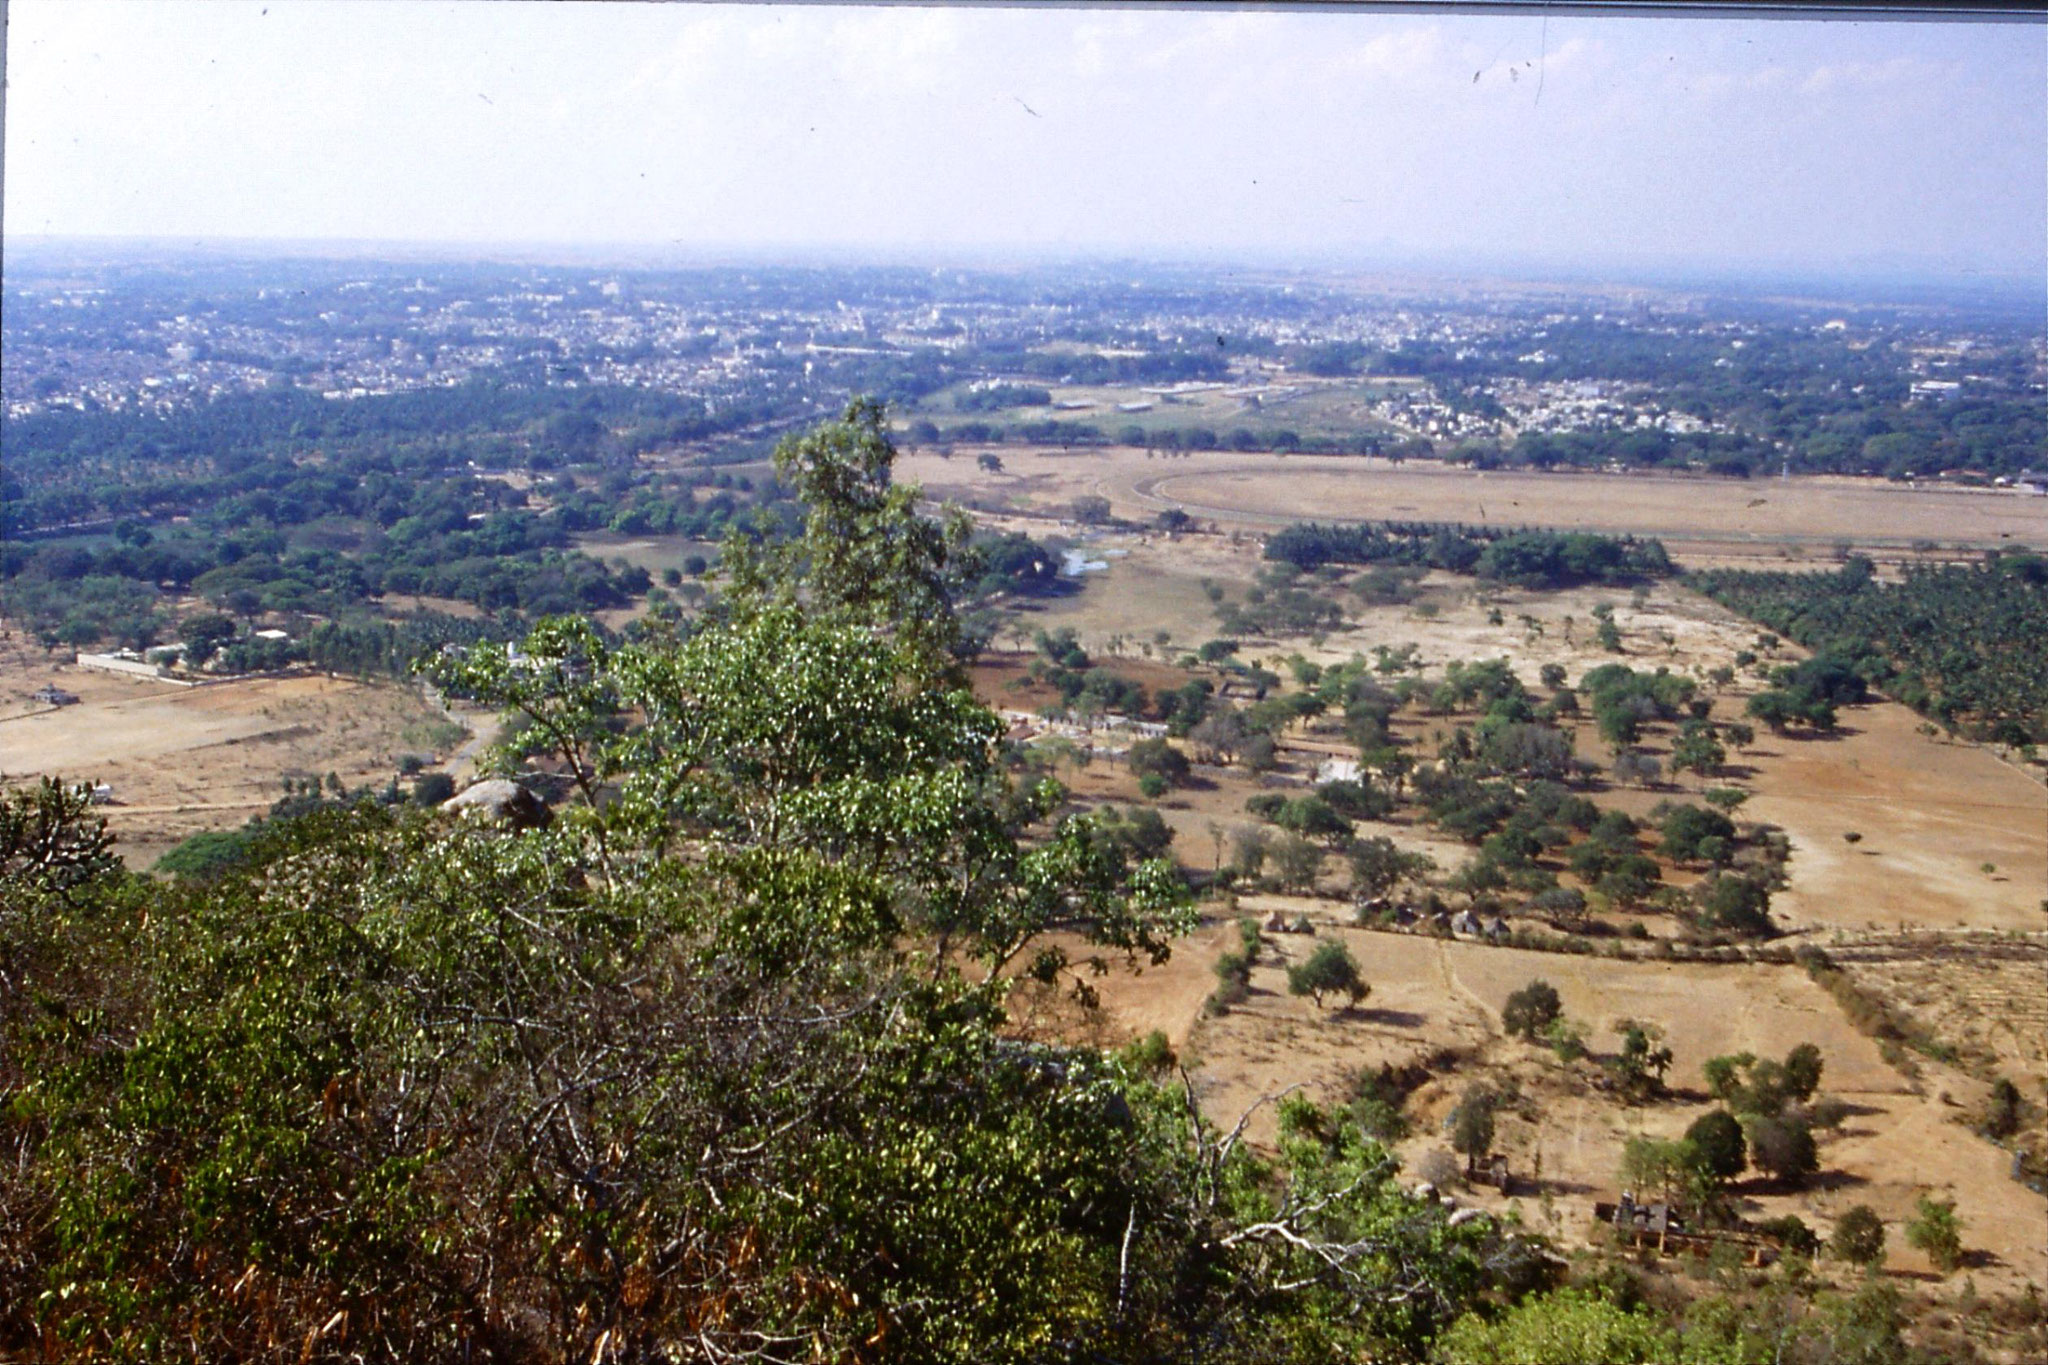 108/6: 12/3/1990 Mysore city centre from half way up hill